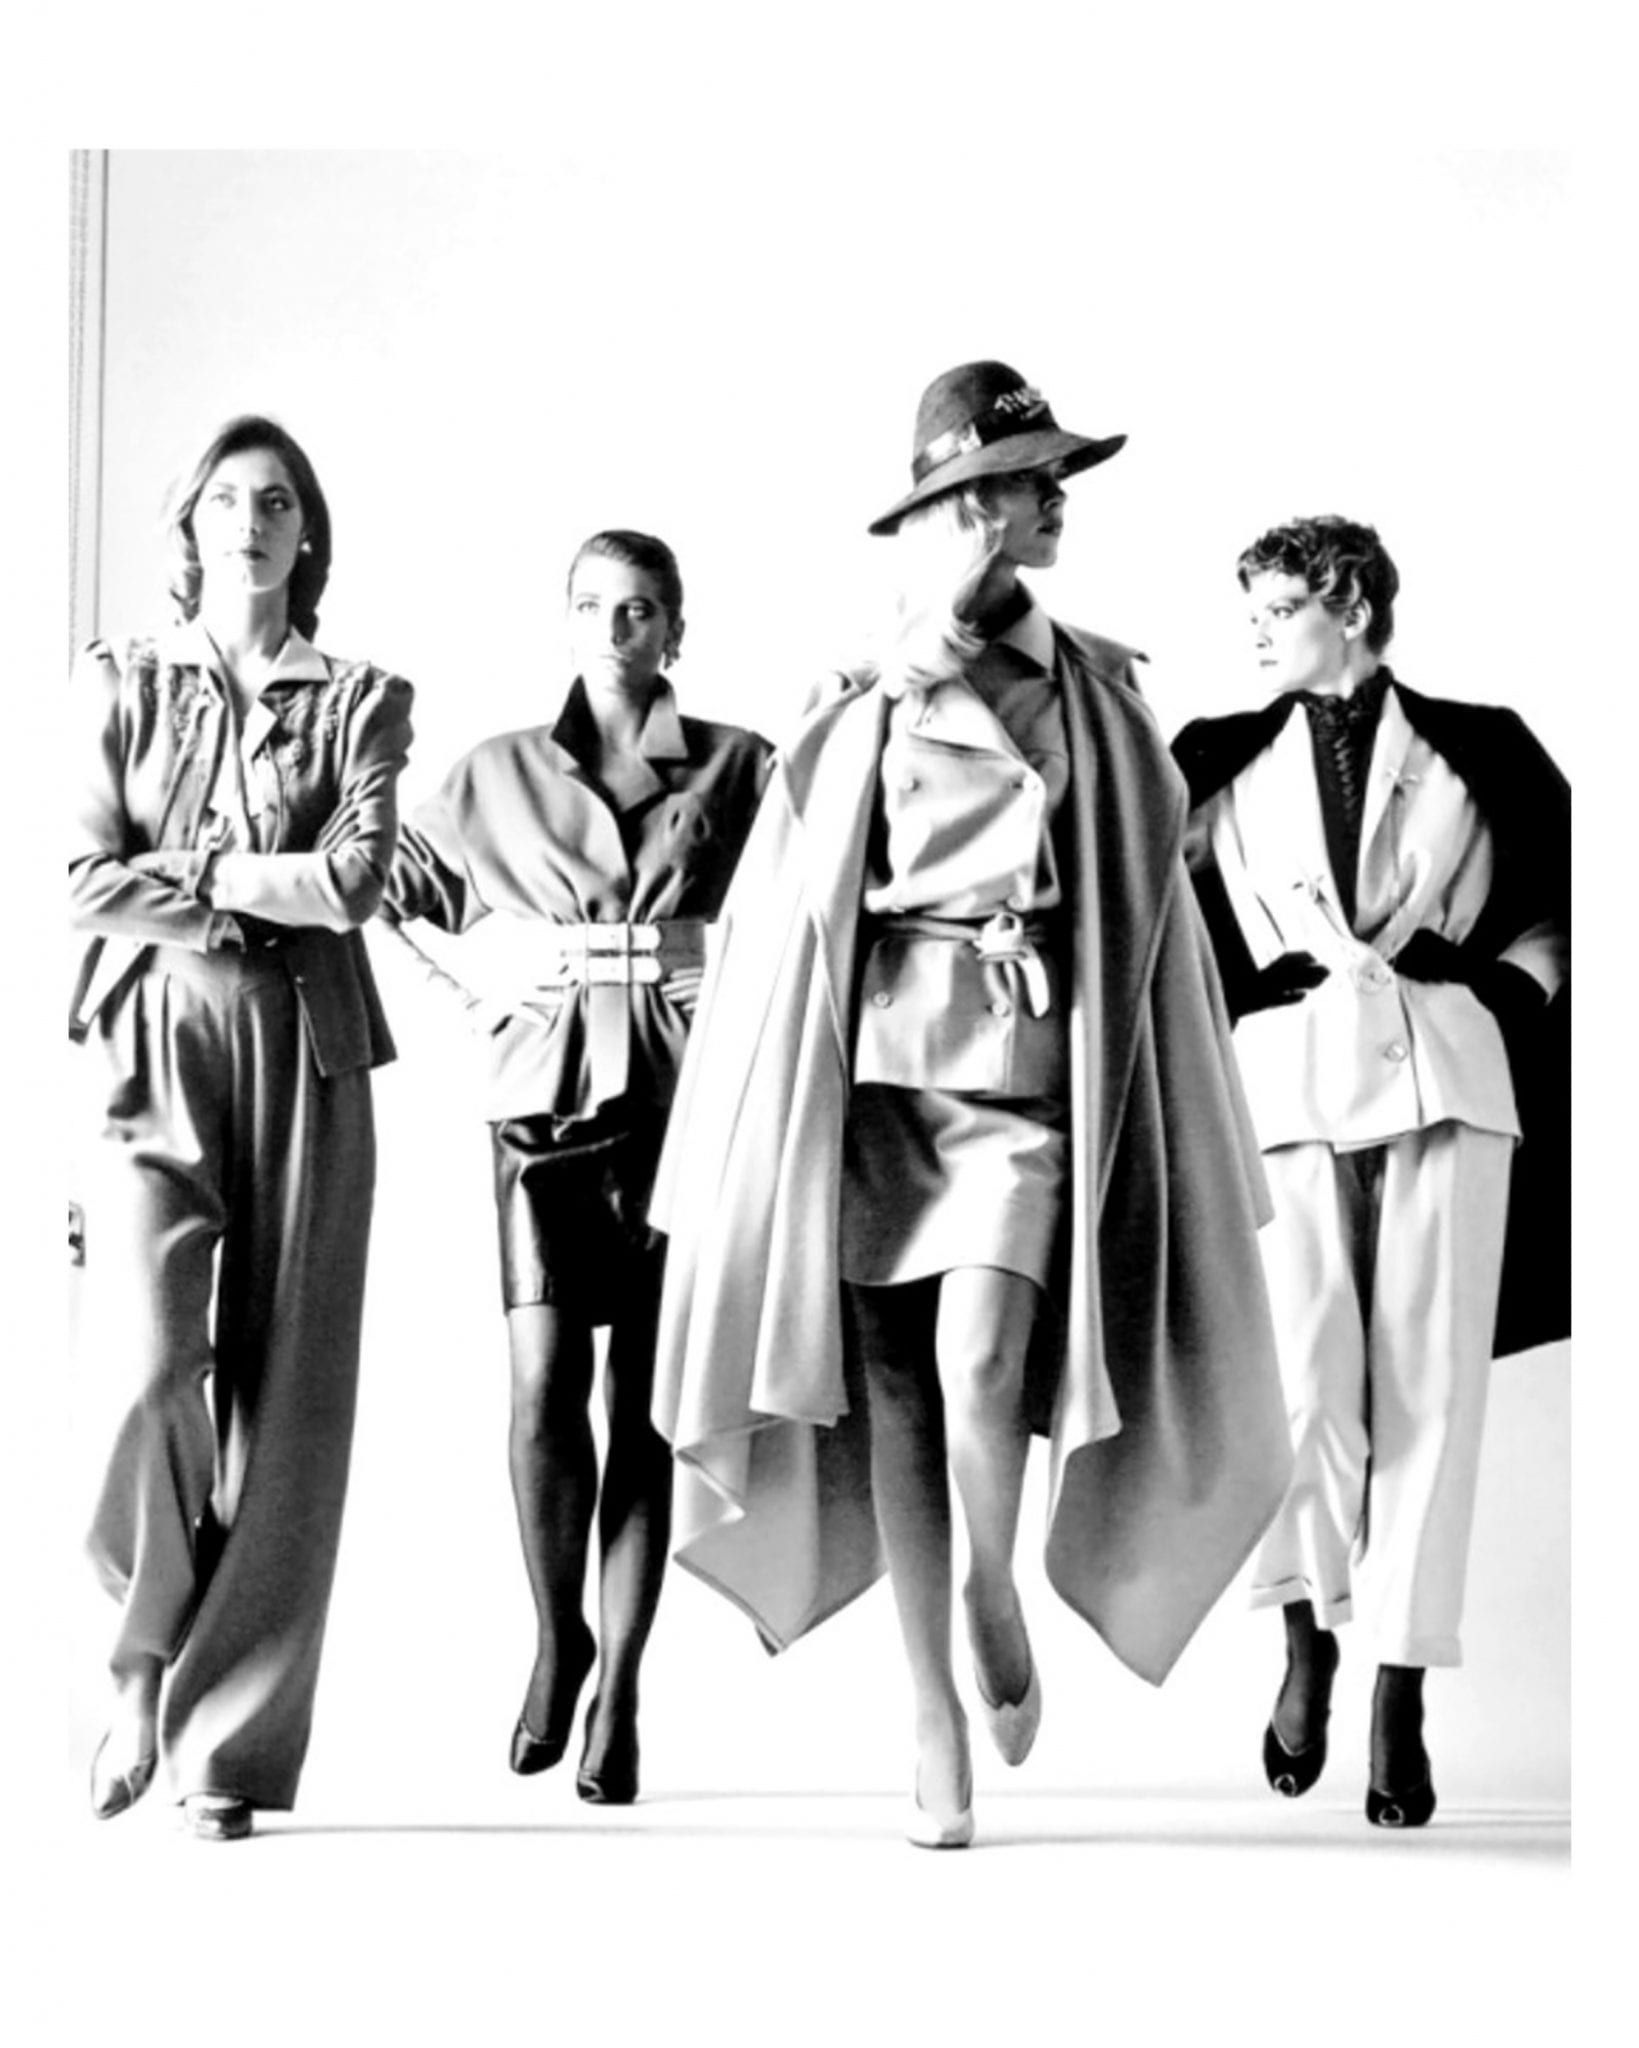 Rediscover the work of a controversial master as Helmut Newton's centenary is marked